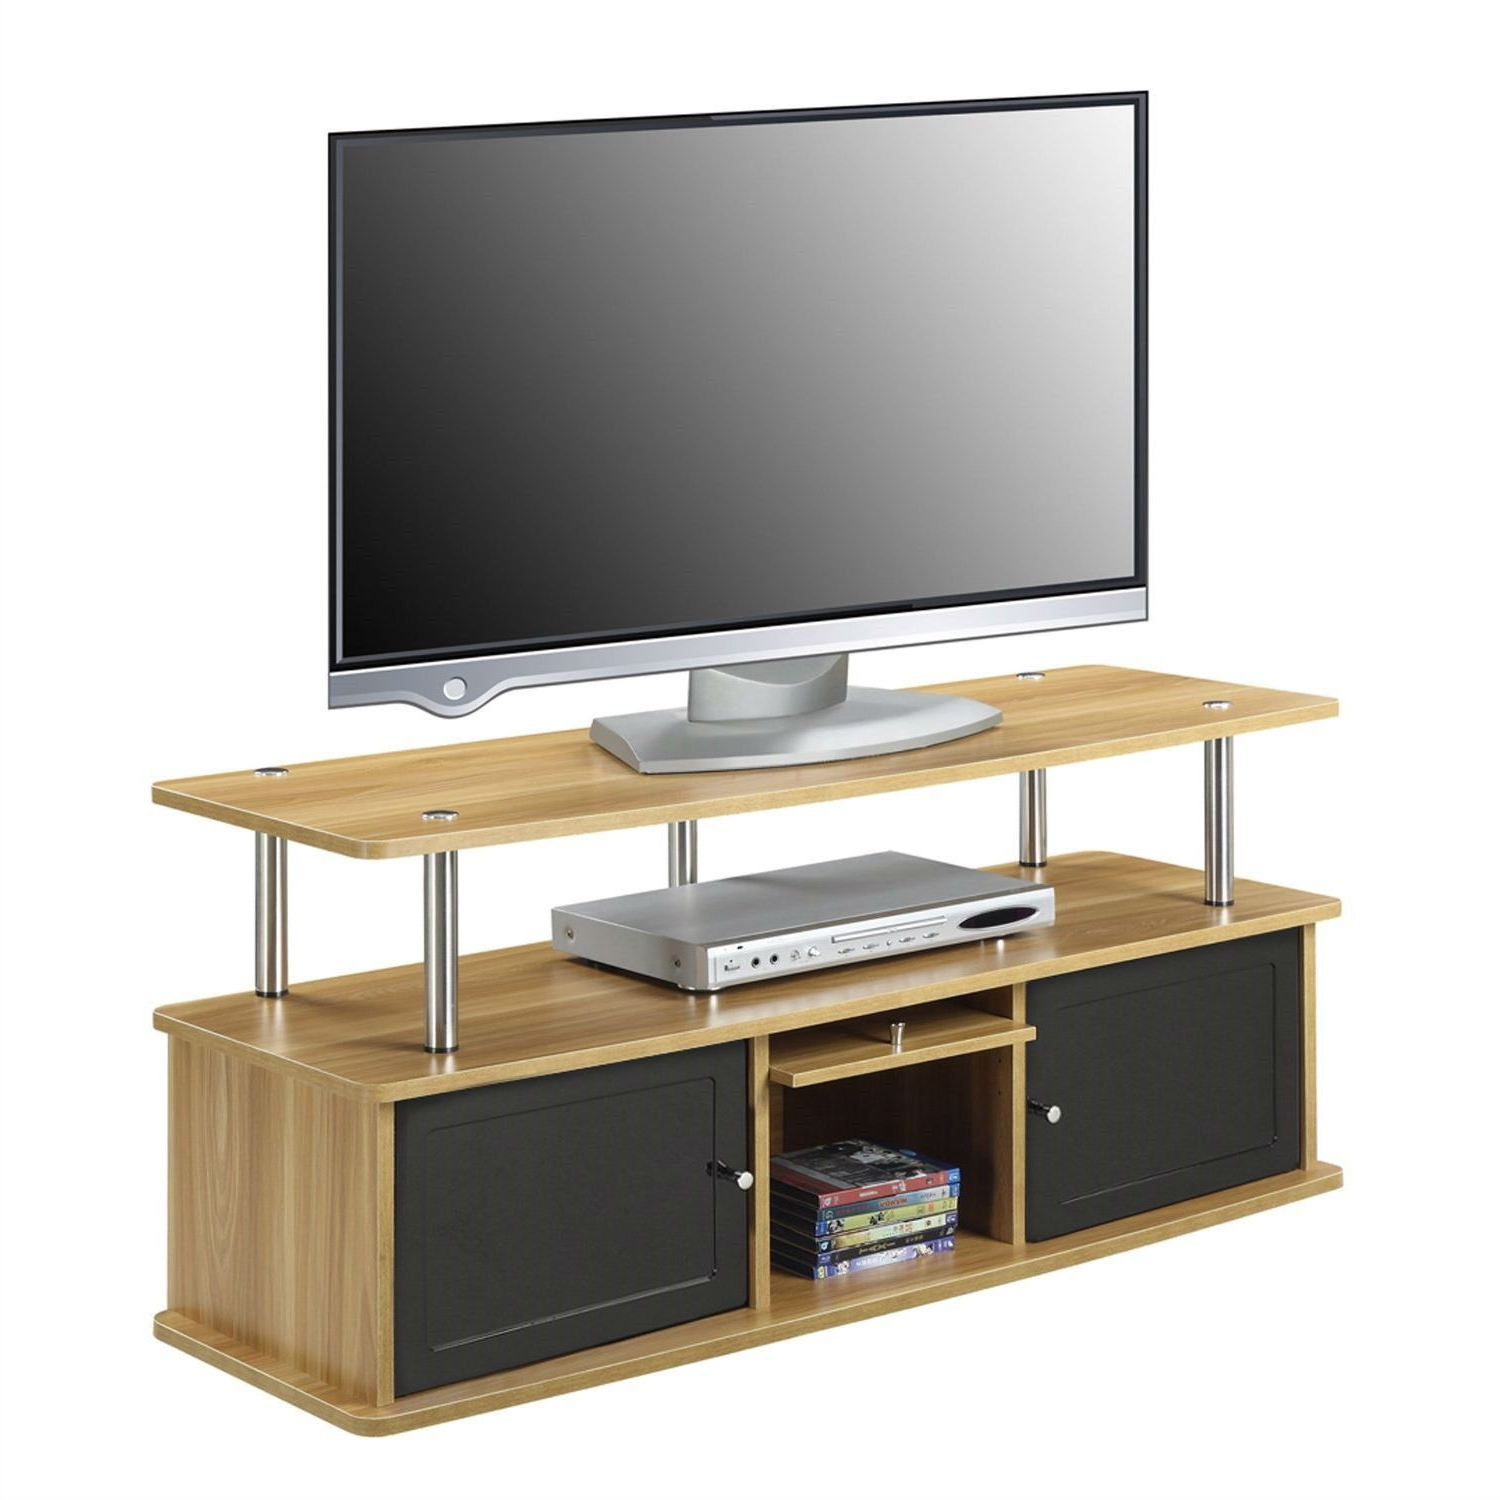 Modern 50 Inch Tv Stand In Light Oak / Black Wood Finish | Products With Regard To Rowan 64 Inch Tv Stands (View 17 of 20)